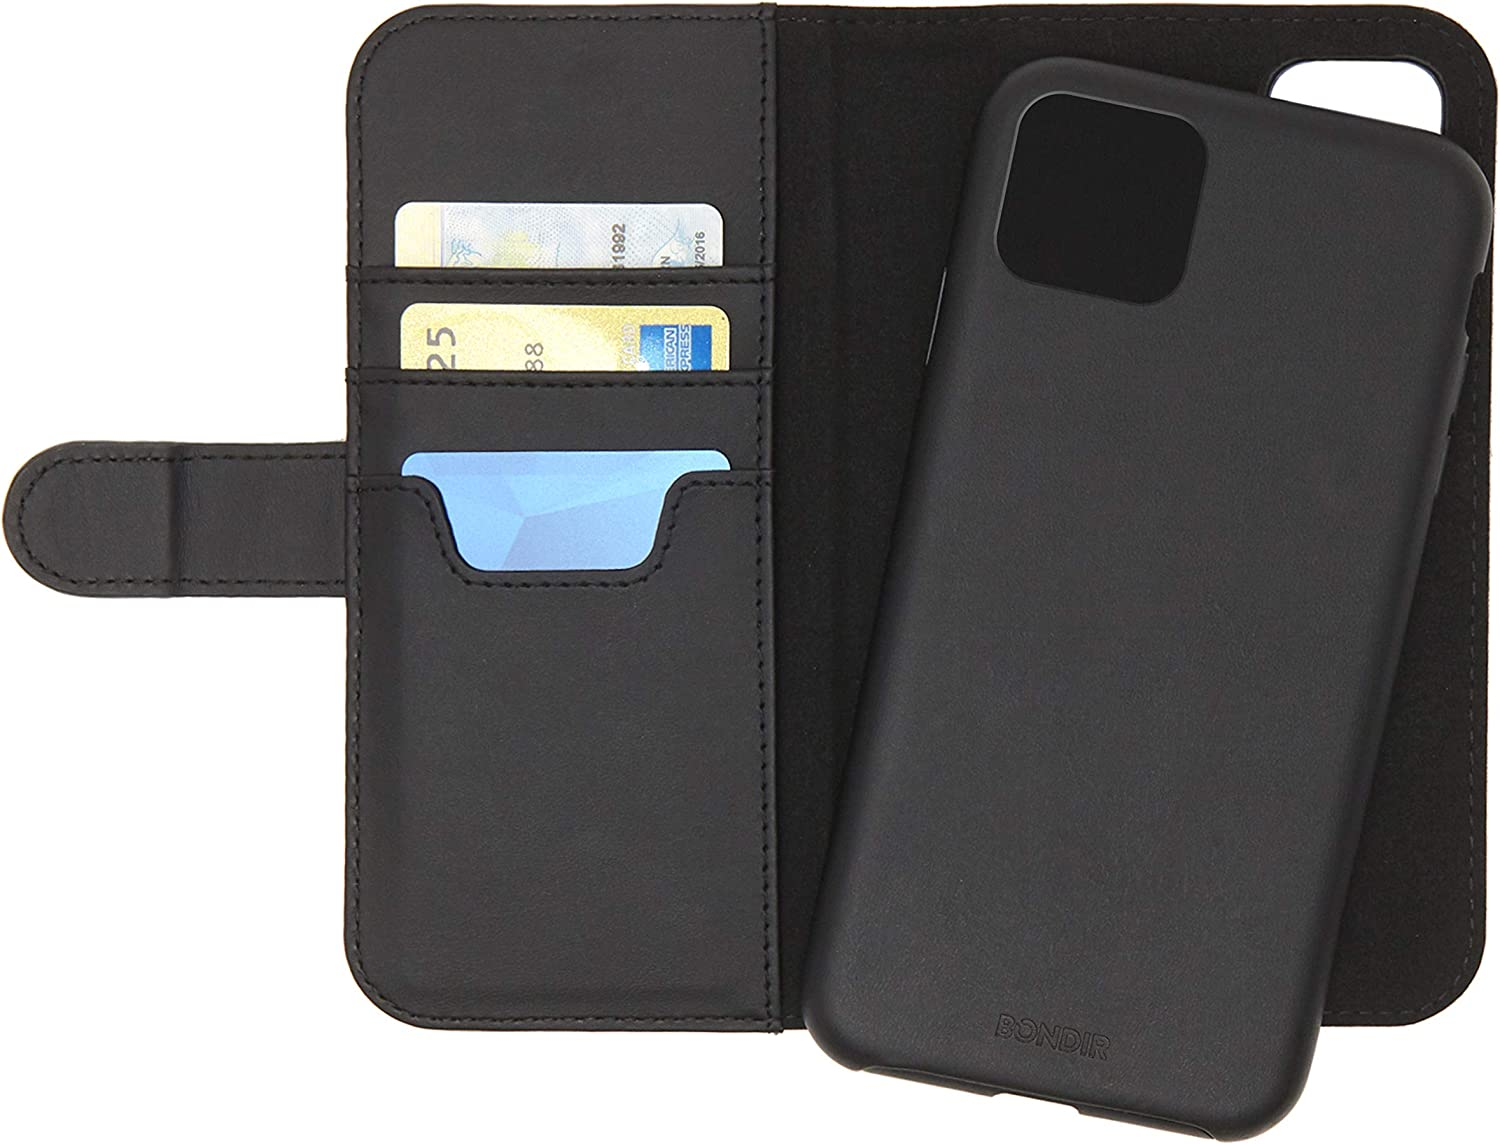 Bondir Black Case for Phone 11 Pro (2 in 1) Magnetic Detachable Leather Wallet Case for Apple iPhone X, iPhone Xs, iPhone 11 Pro